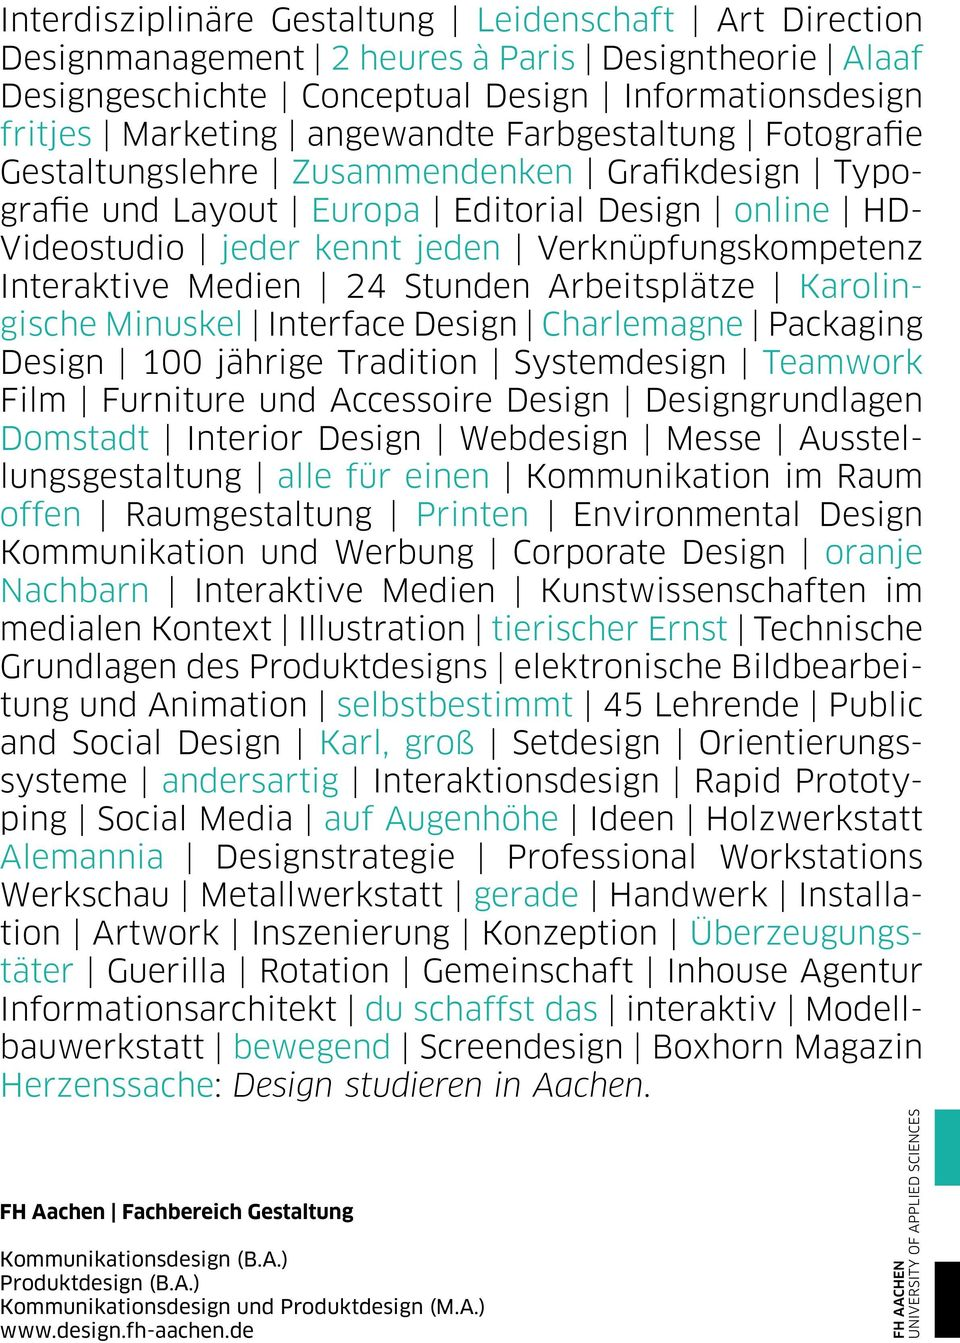 24 Stunden Arbeitsplätze Karolingische Minuskel Interface Design Charlemagne Packaging Design 100 jährige Tradition Systemdesign Teamwork Film Furniture und Accessoire Design Designgrundlagen